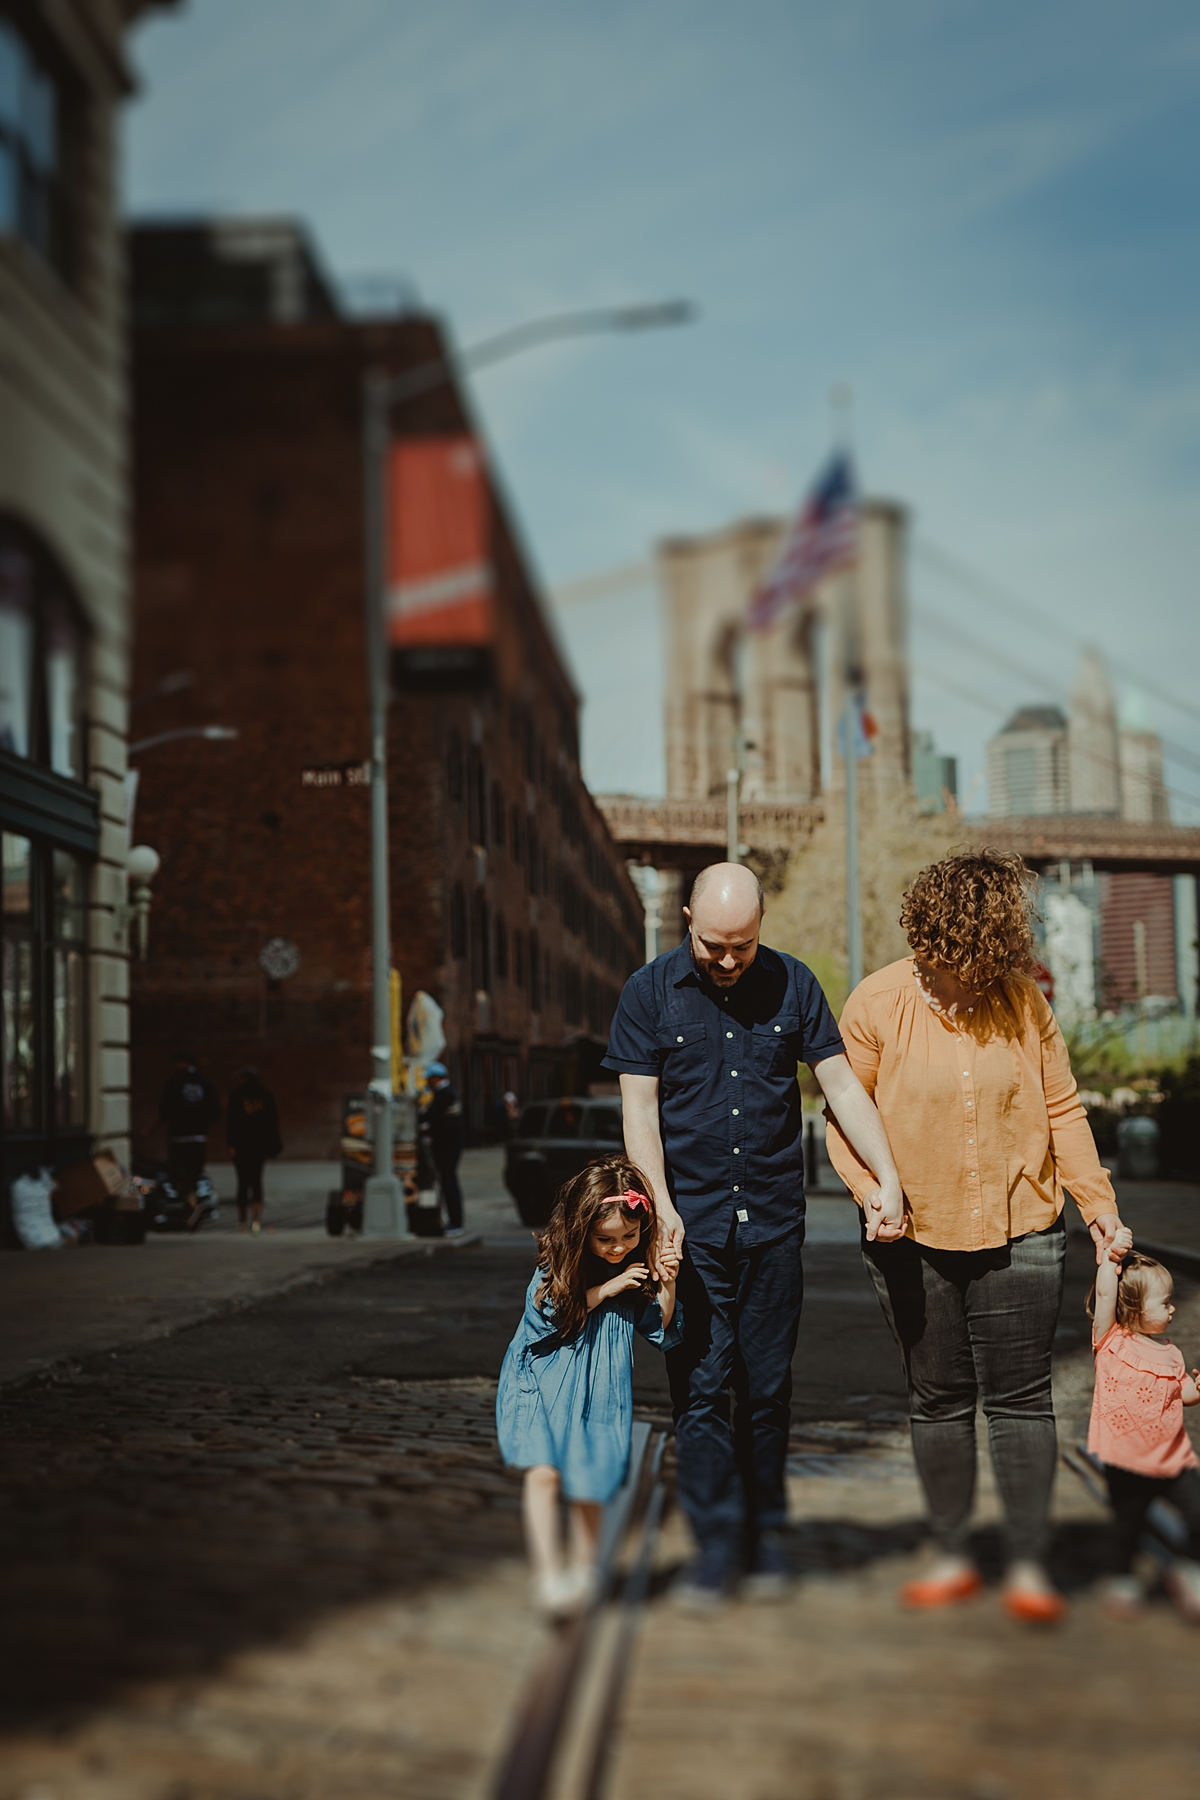 tilt shift candid family photo of family walking along cobble stoned street in dumbo brooklyn. photo by nyc family and newborn photographer krystil mcdowall